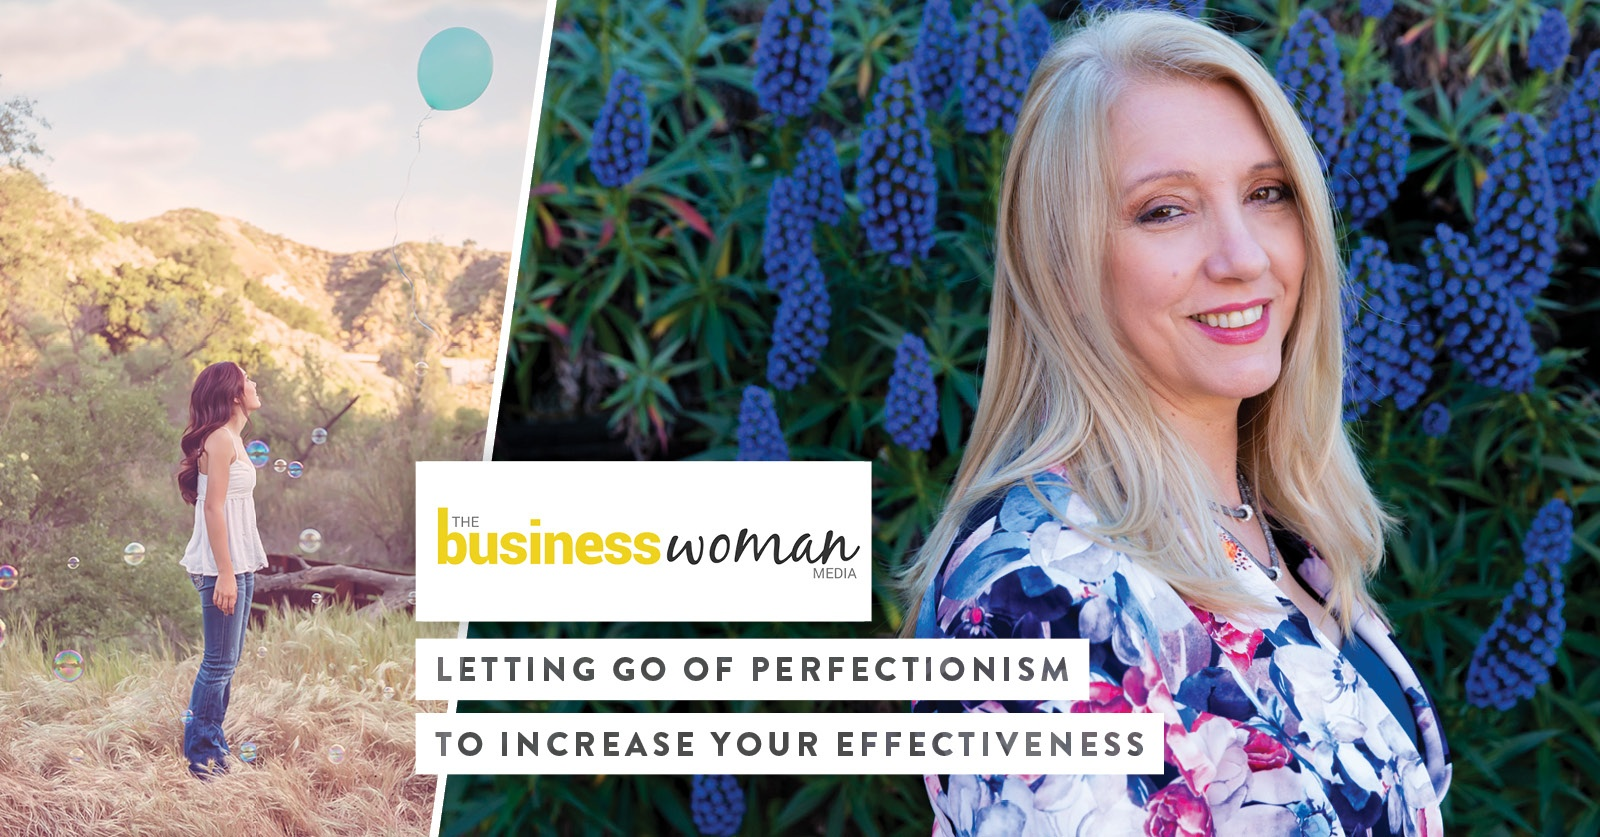 business-woman-media-letting-go-of-perfectionism-to-increase-your-effectiveness